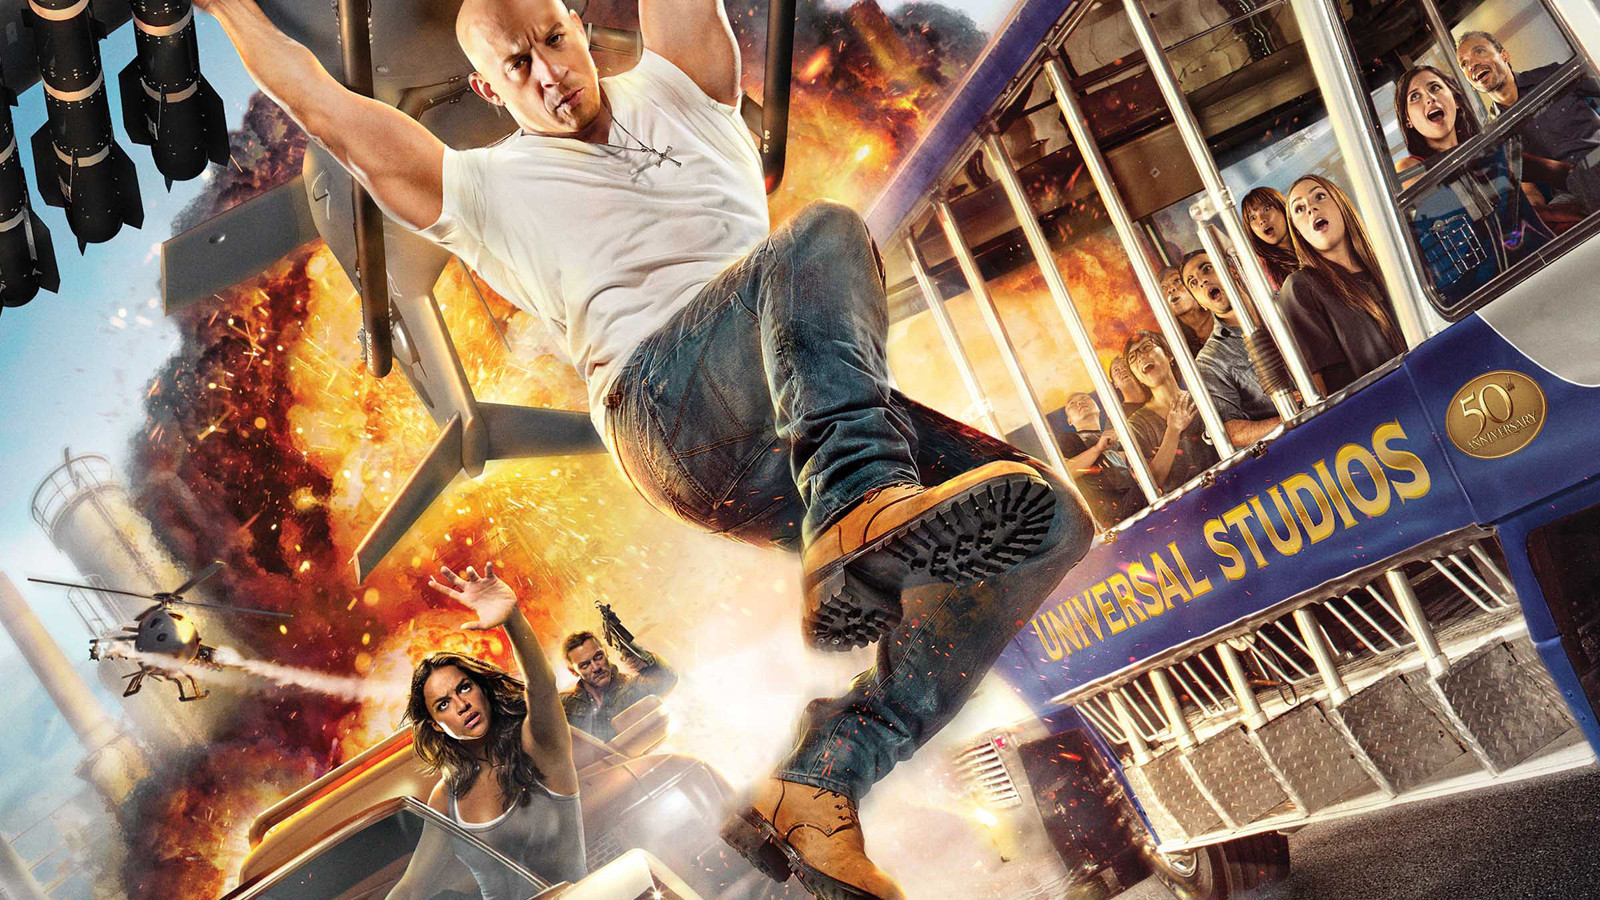 Fast Furious Supercharged At Universal Studios Hollywood